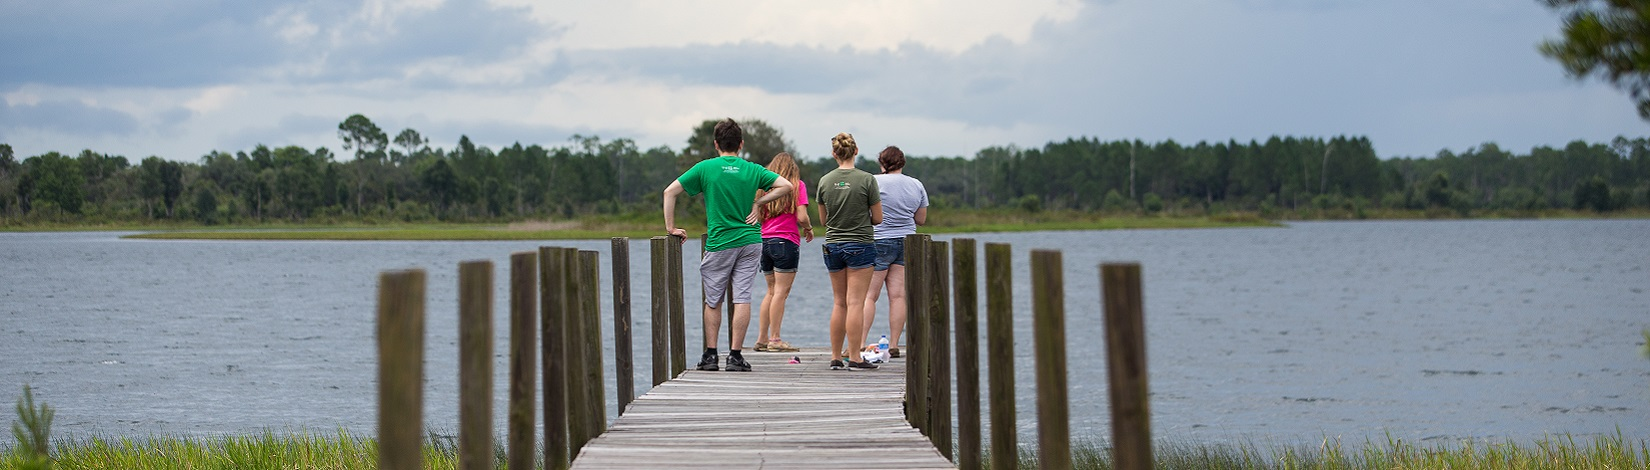 4-H youths enjoy the scenery from and activities on a dock at camp